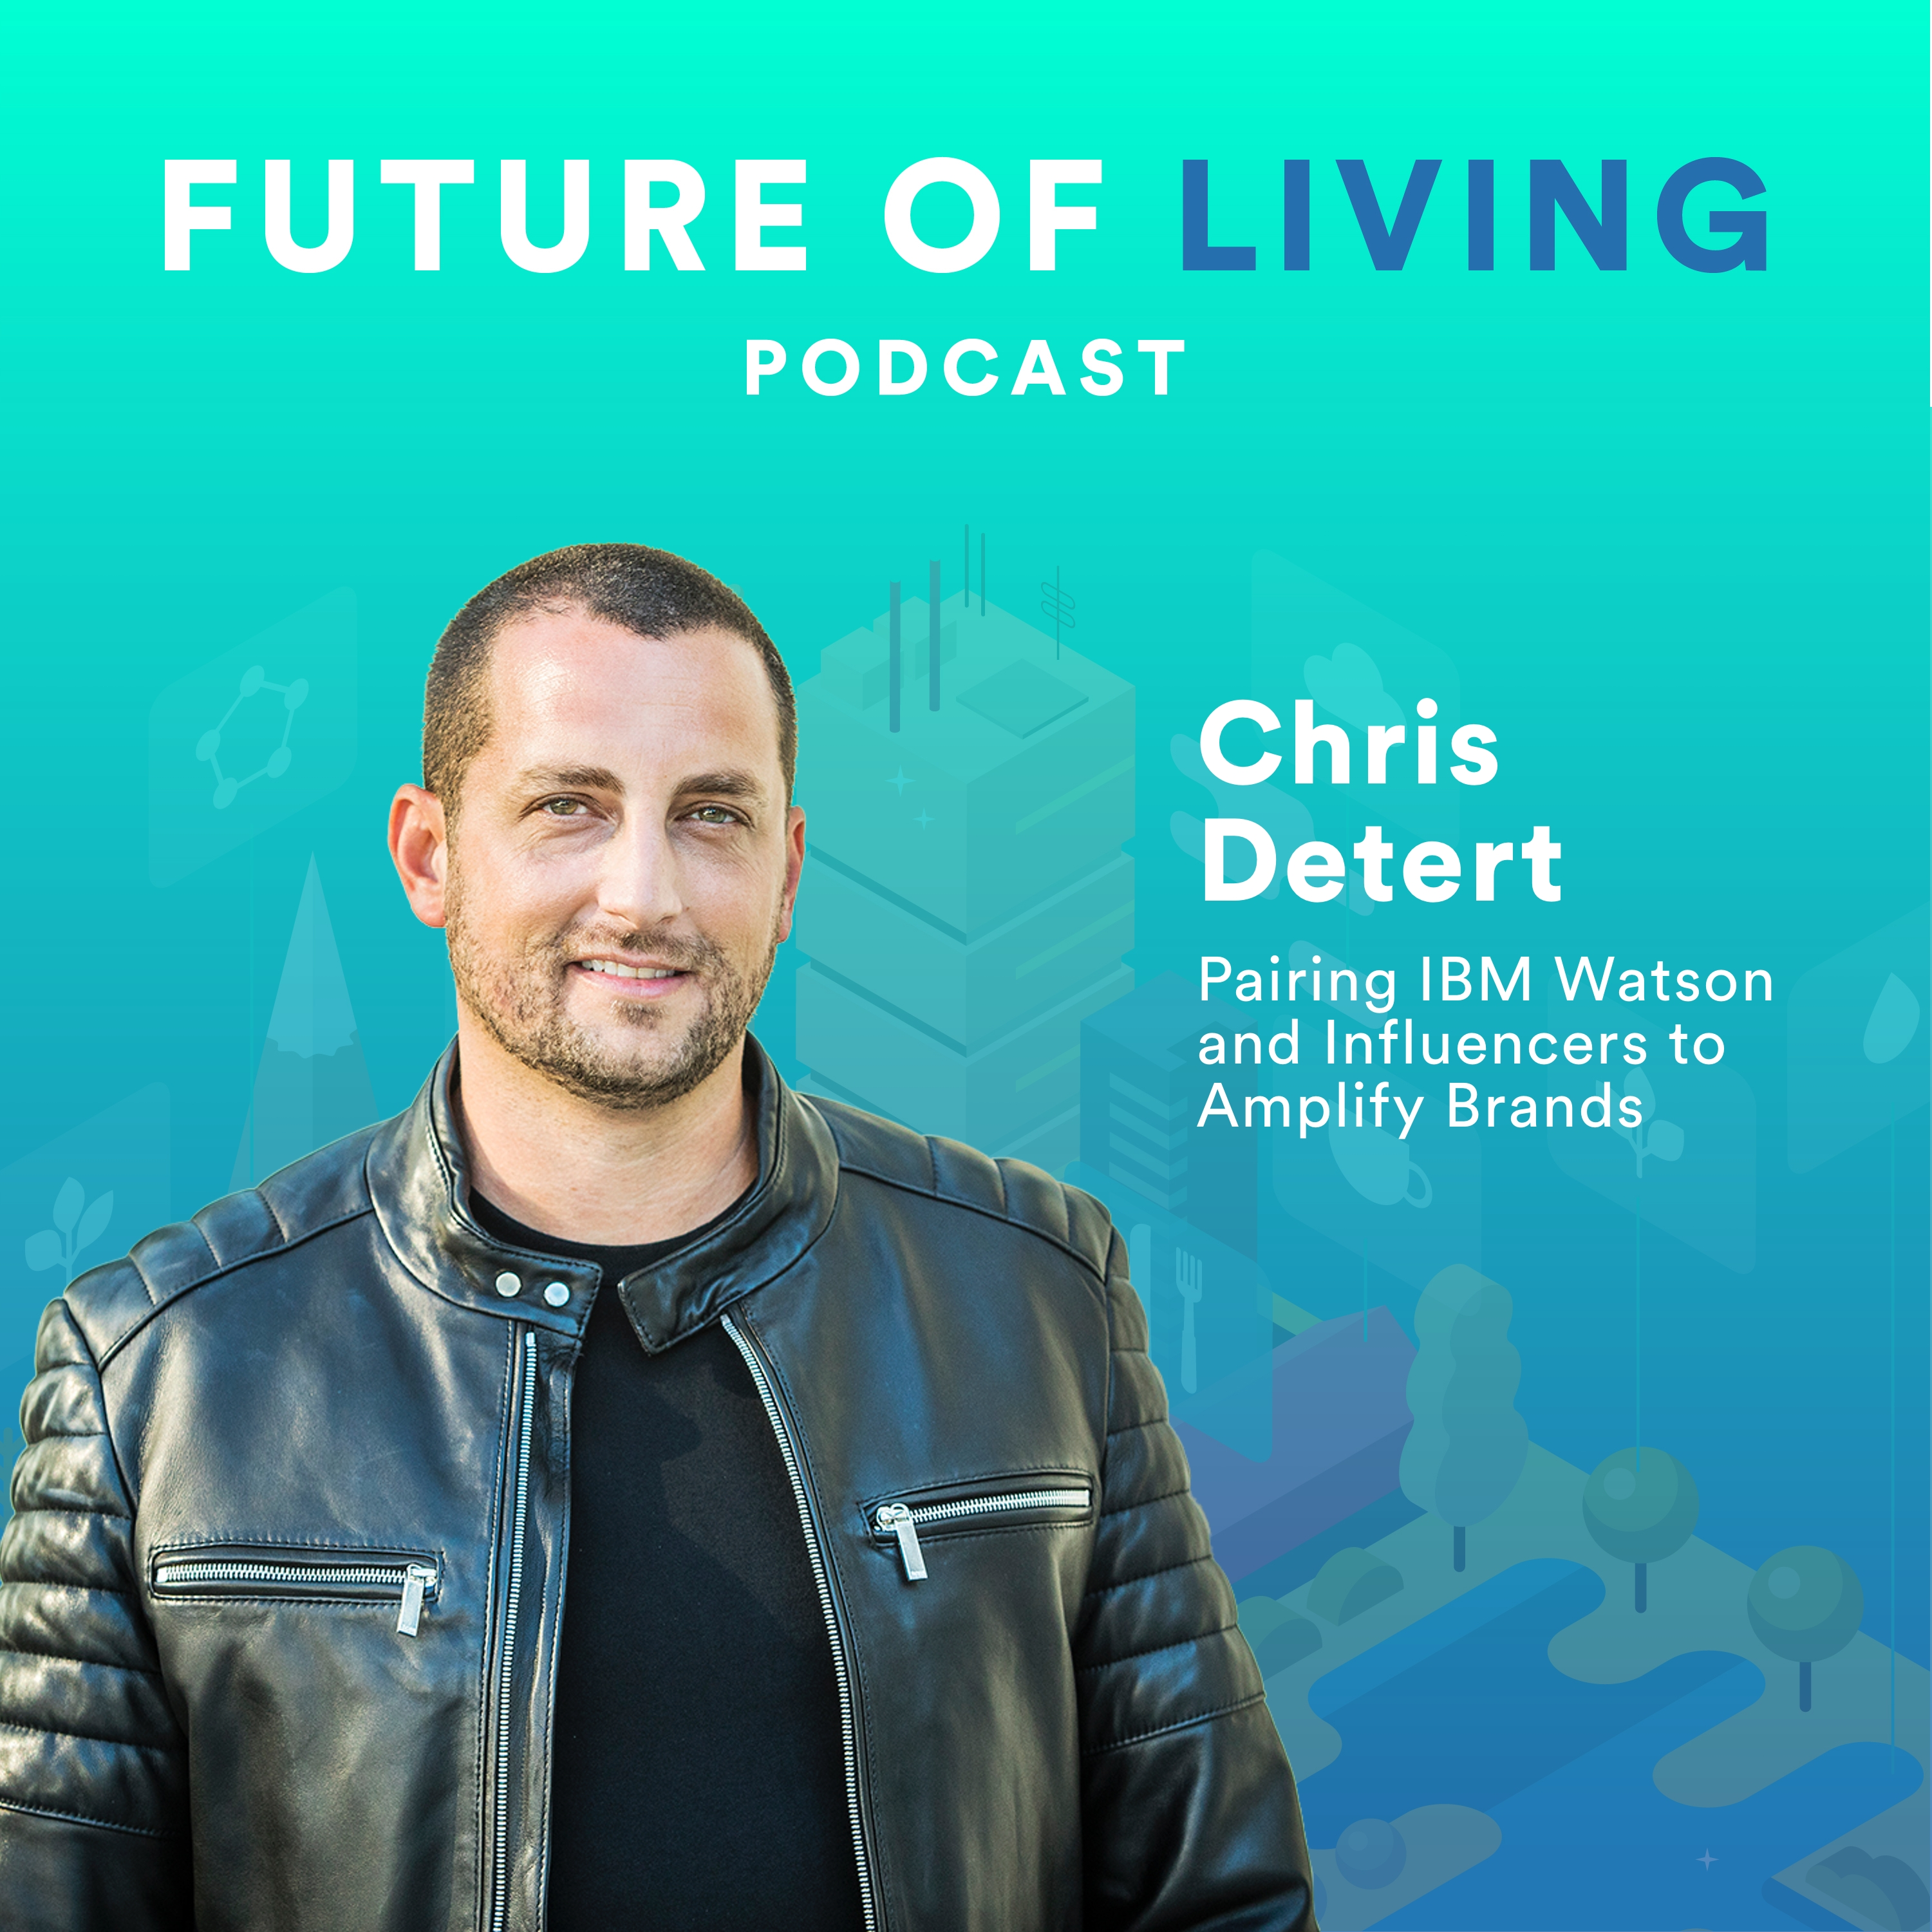 Chris Detert on The Future of Living Podcast